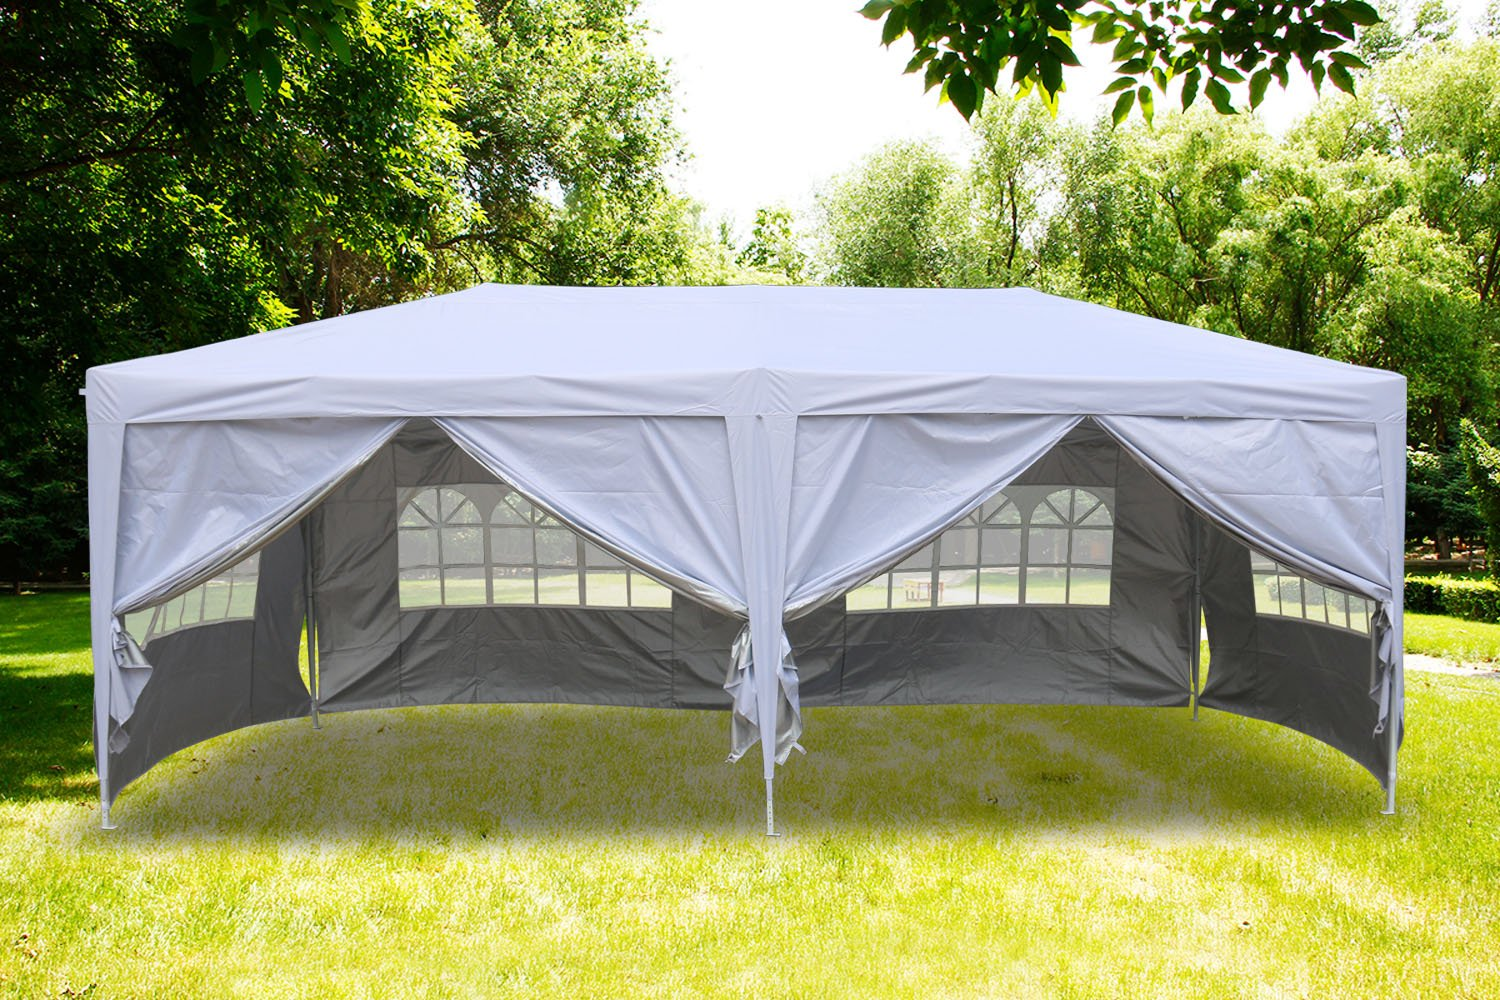 Greenbay Premium Beige Pop-up Gazebo with Silver Protective Layer + 3 free WindBars + 4 Leg Weight Bags + Carrying Bag 3x6M Manufactured for Greenbay